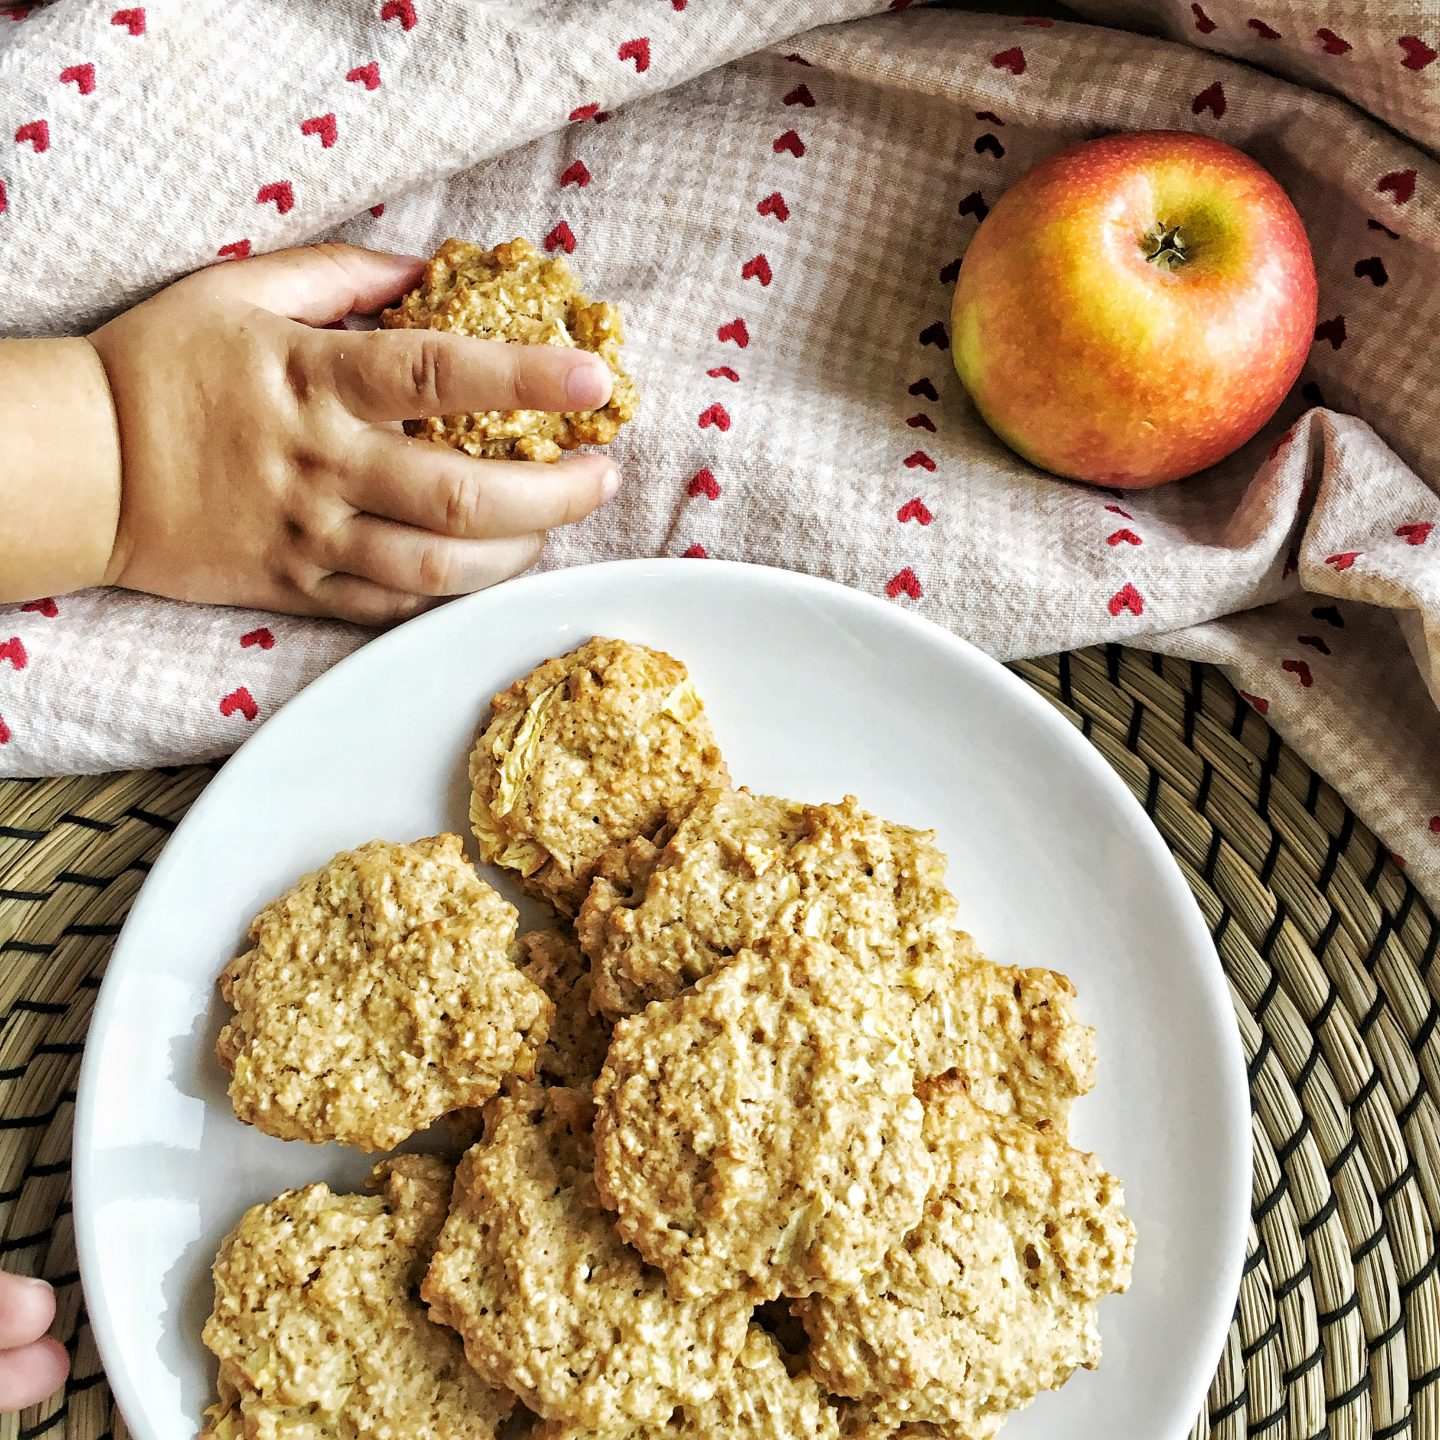 Happiness oatmeal cookies with cinnamon and apples